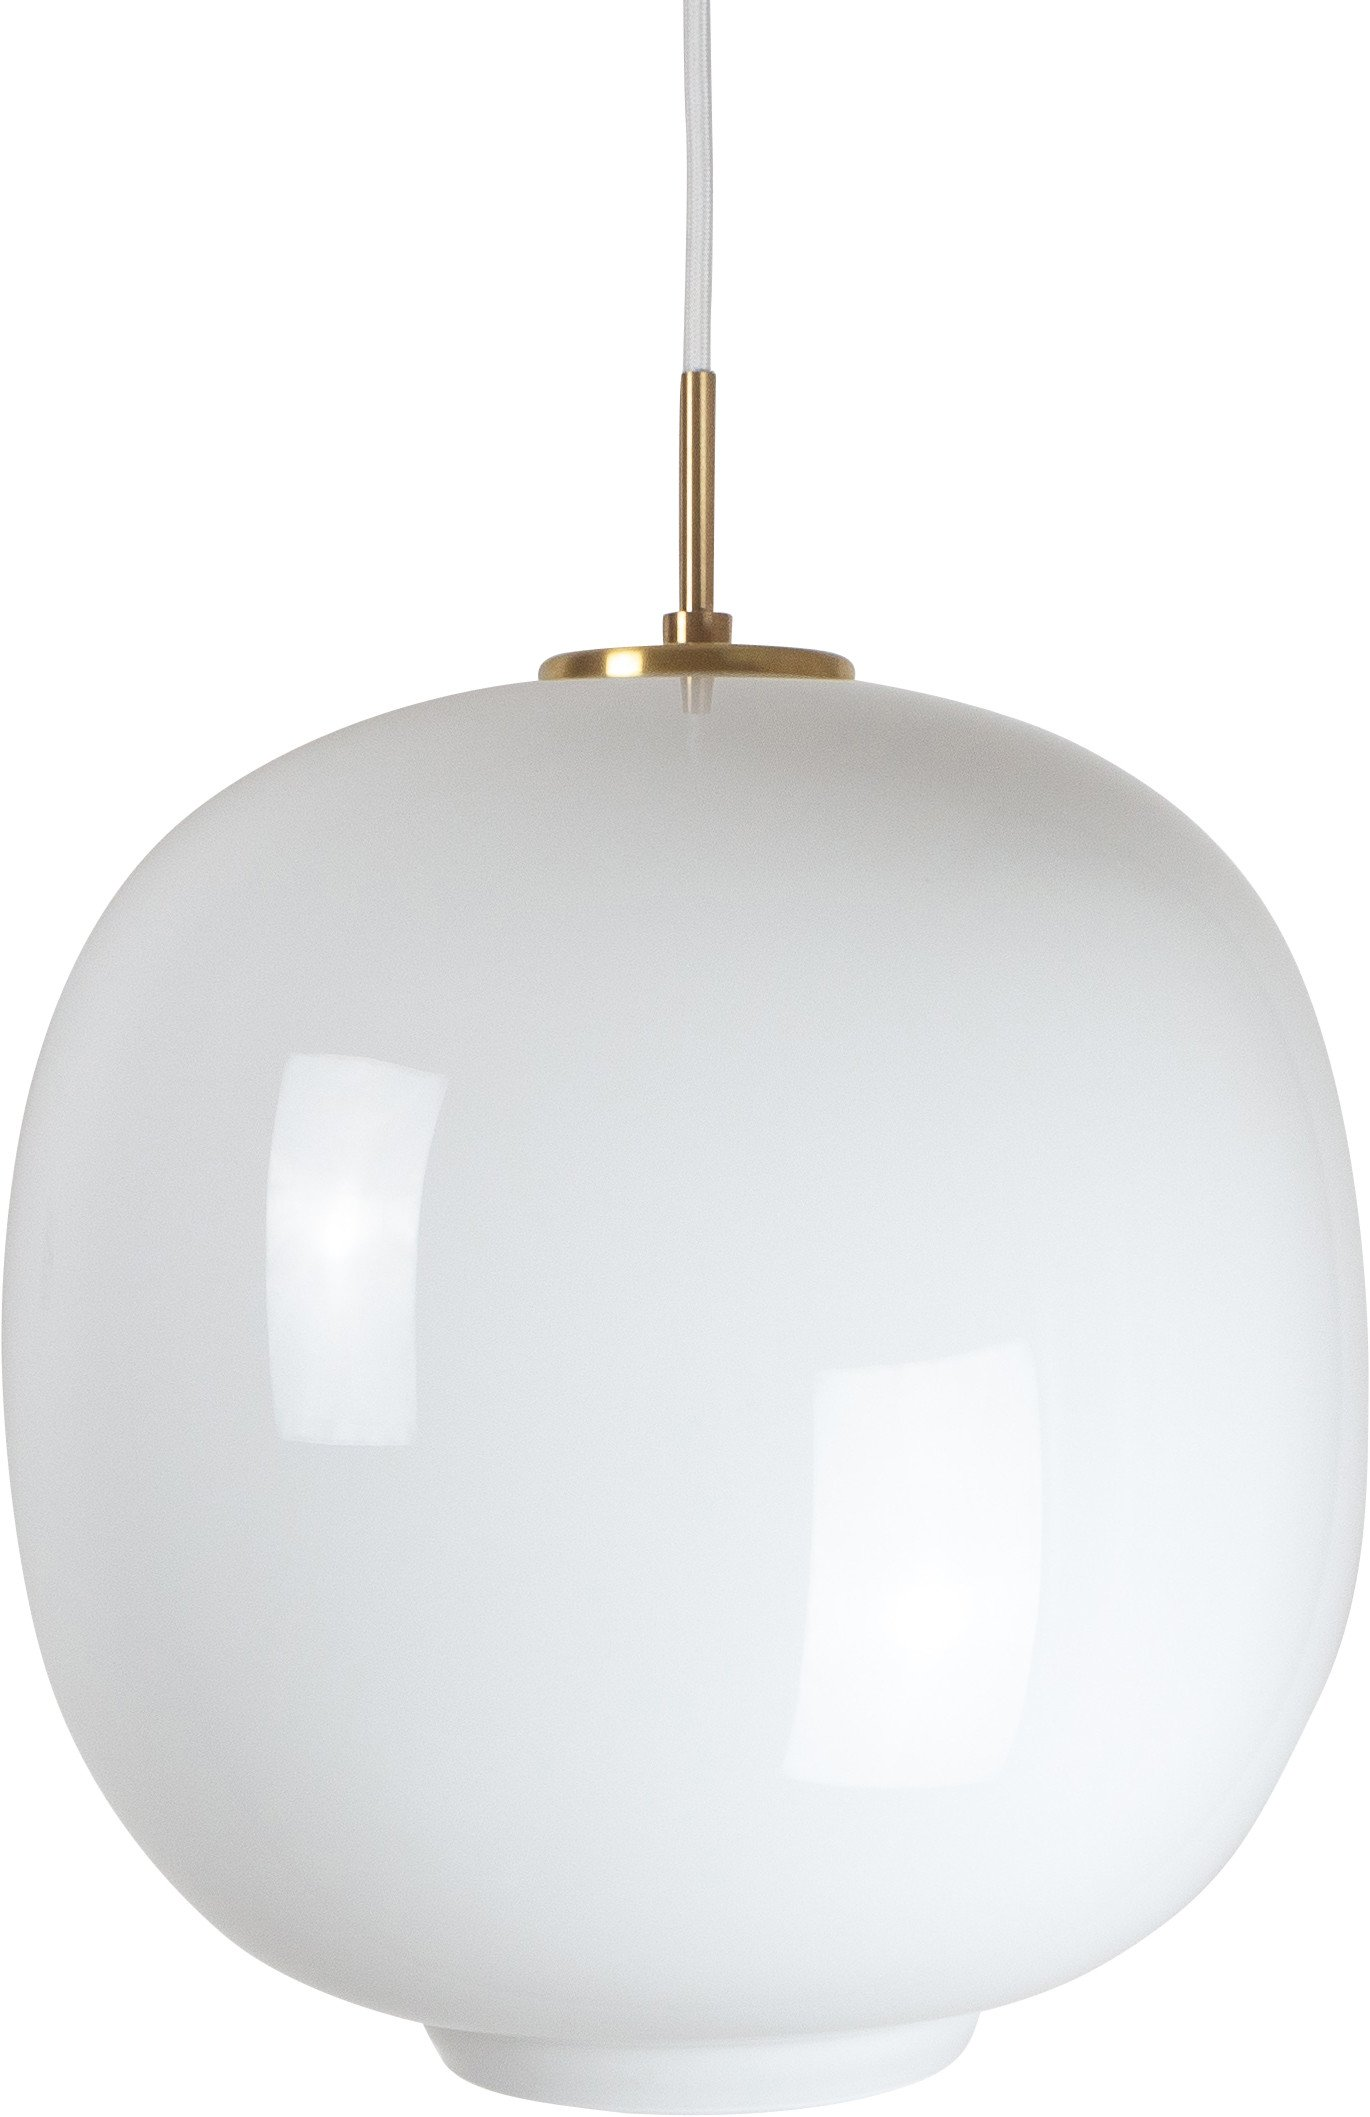 Pendant Lamp by V. Lauritzen for Louis Poulsen, Denmark